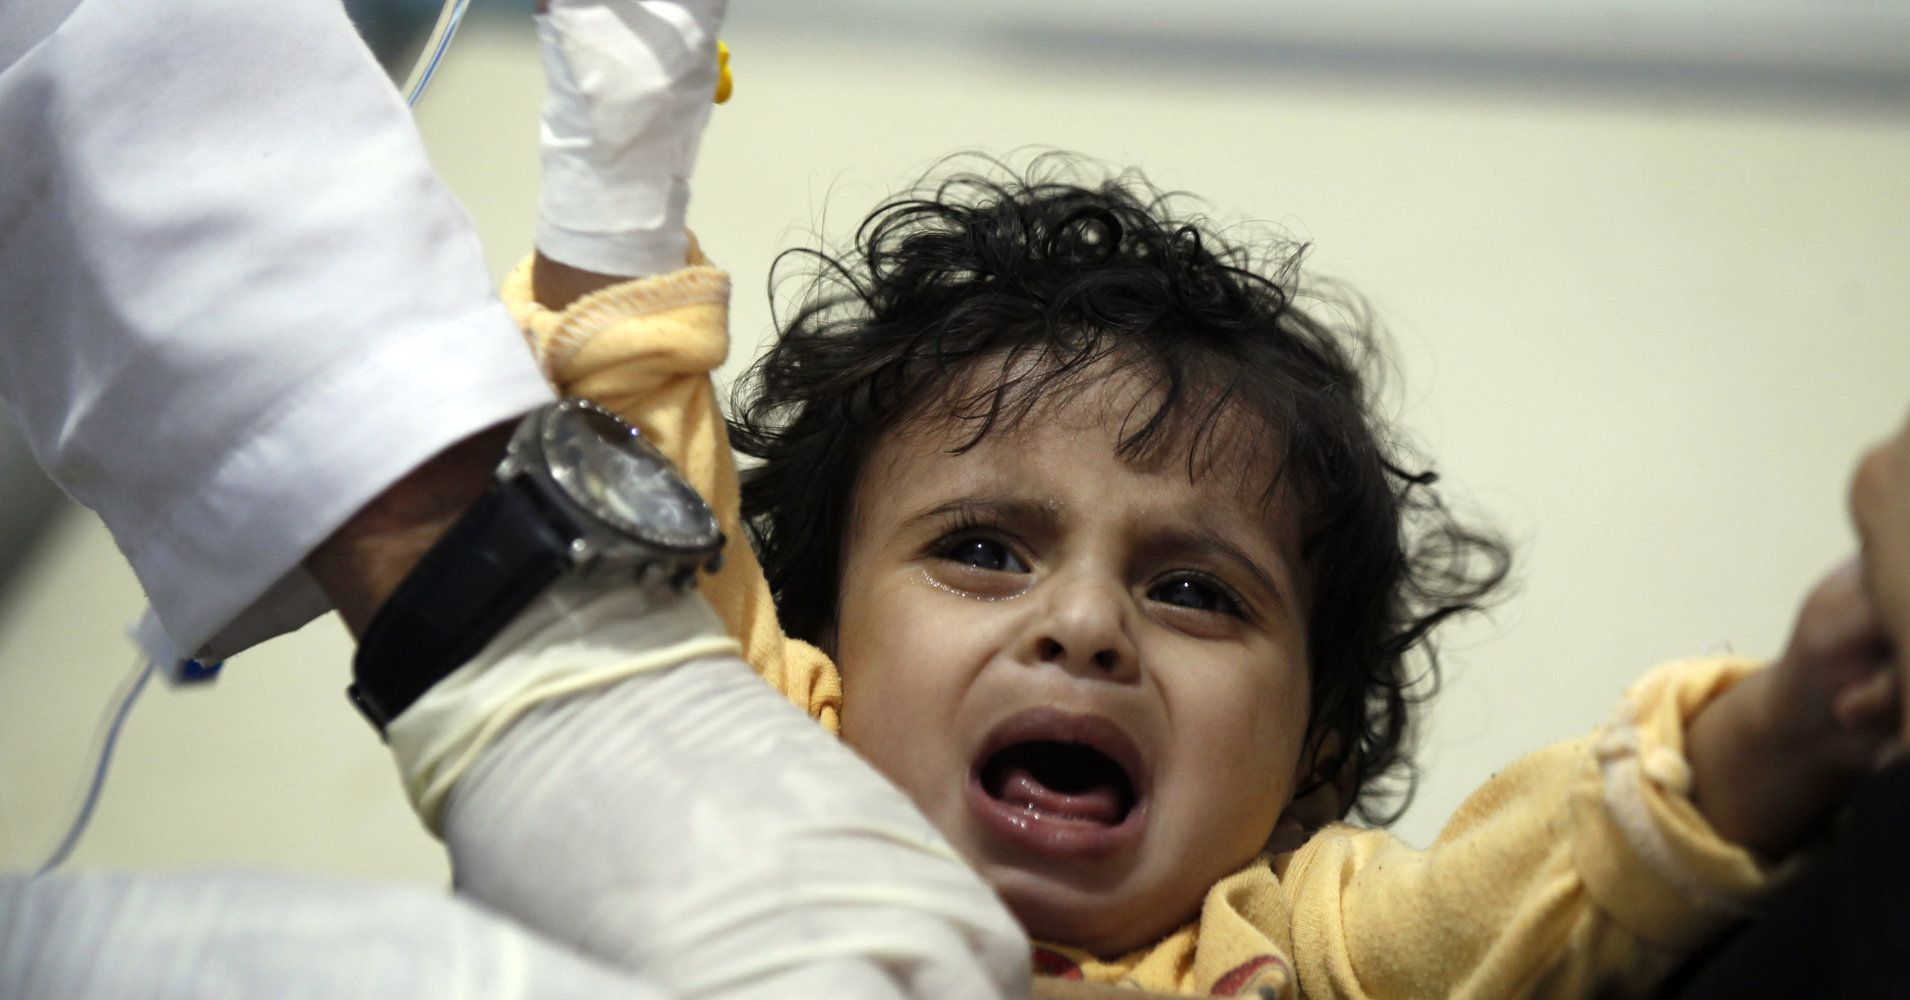 #Hospitals On The Brink As Cholera Kills 184 In Yemen's Capital In Mere Days - HuffPost: HuffPost Hospitals On The Brink As Cholera Kills…